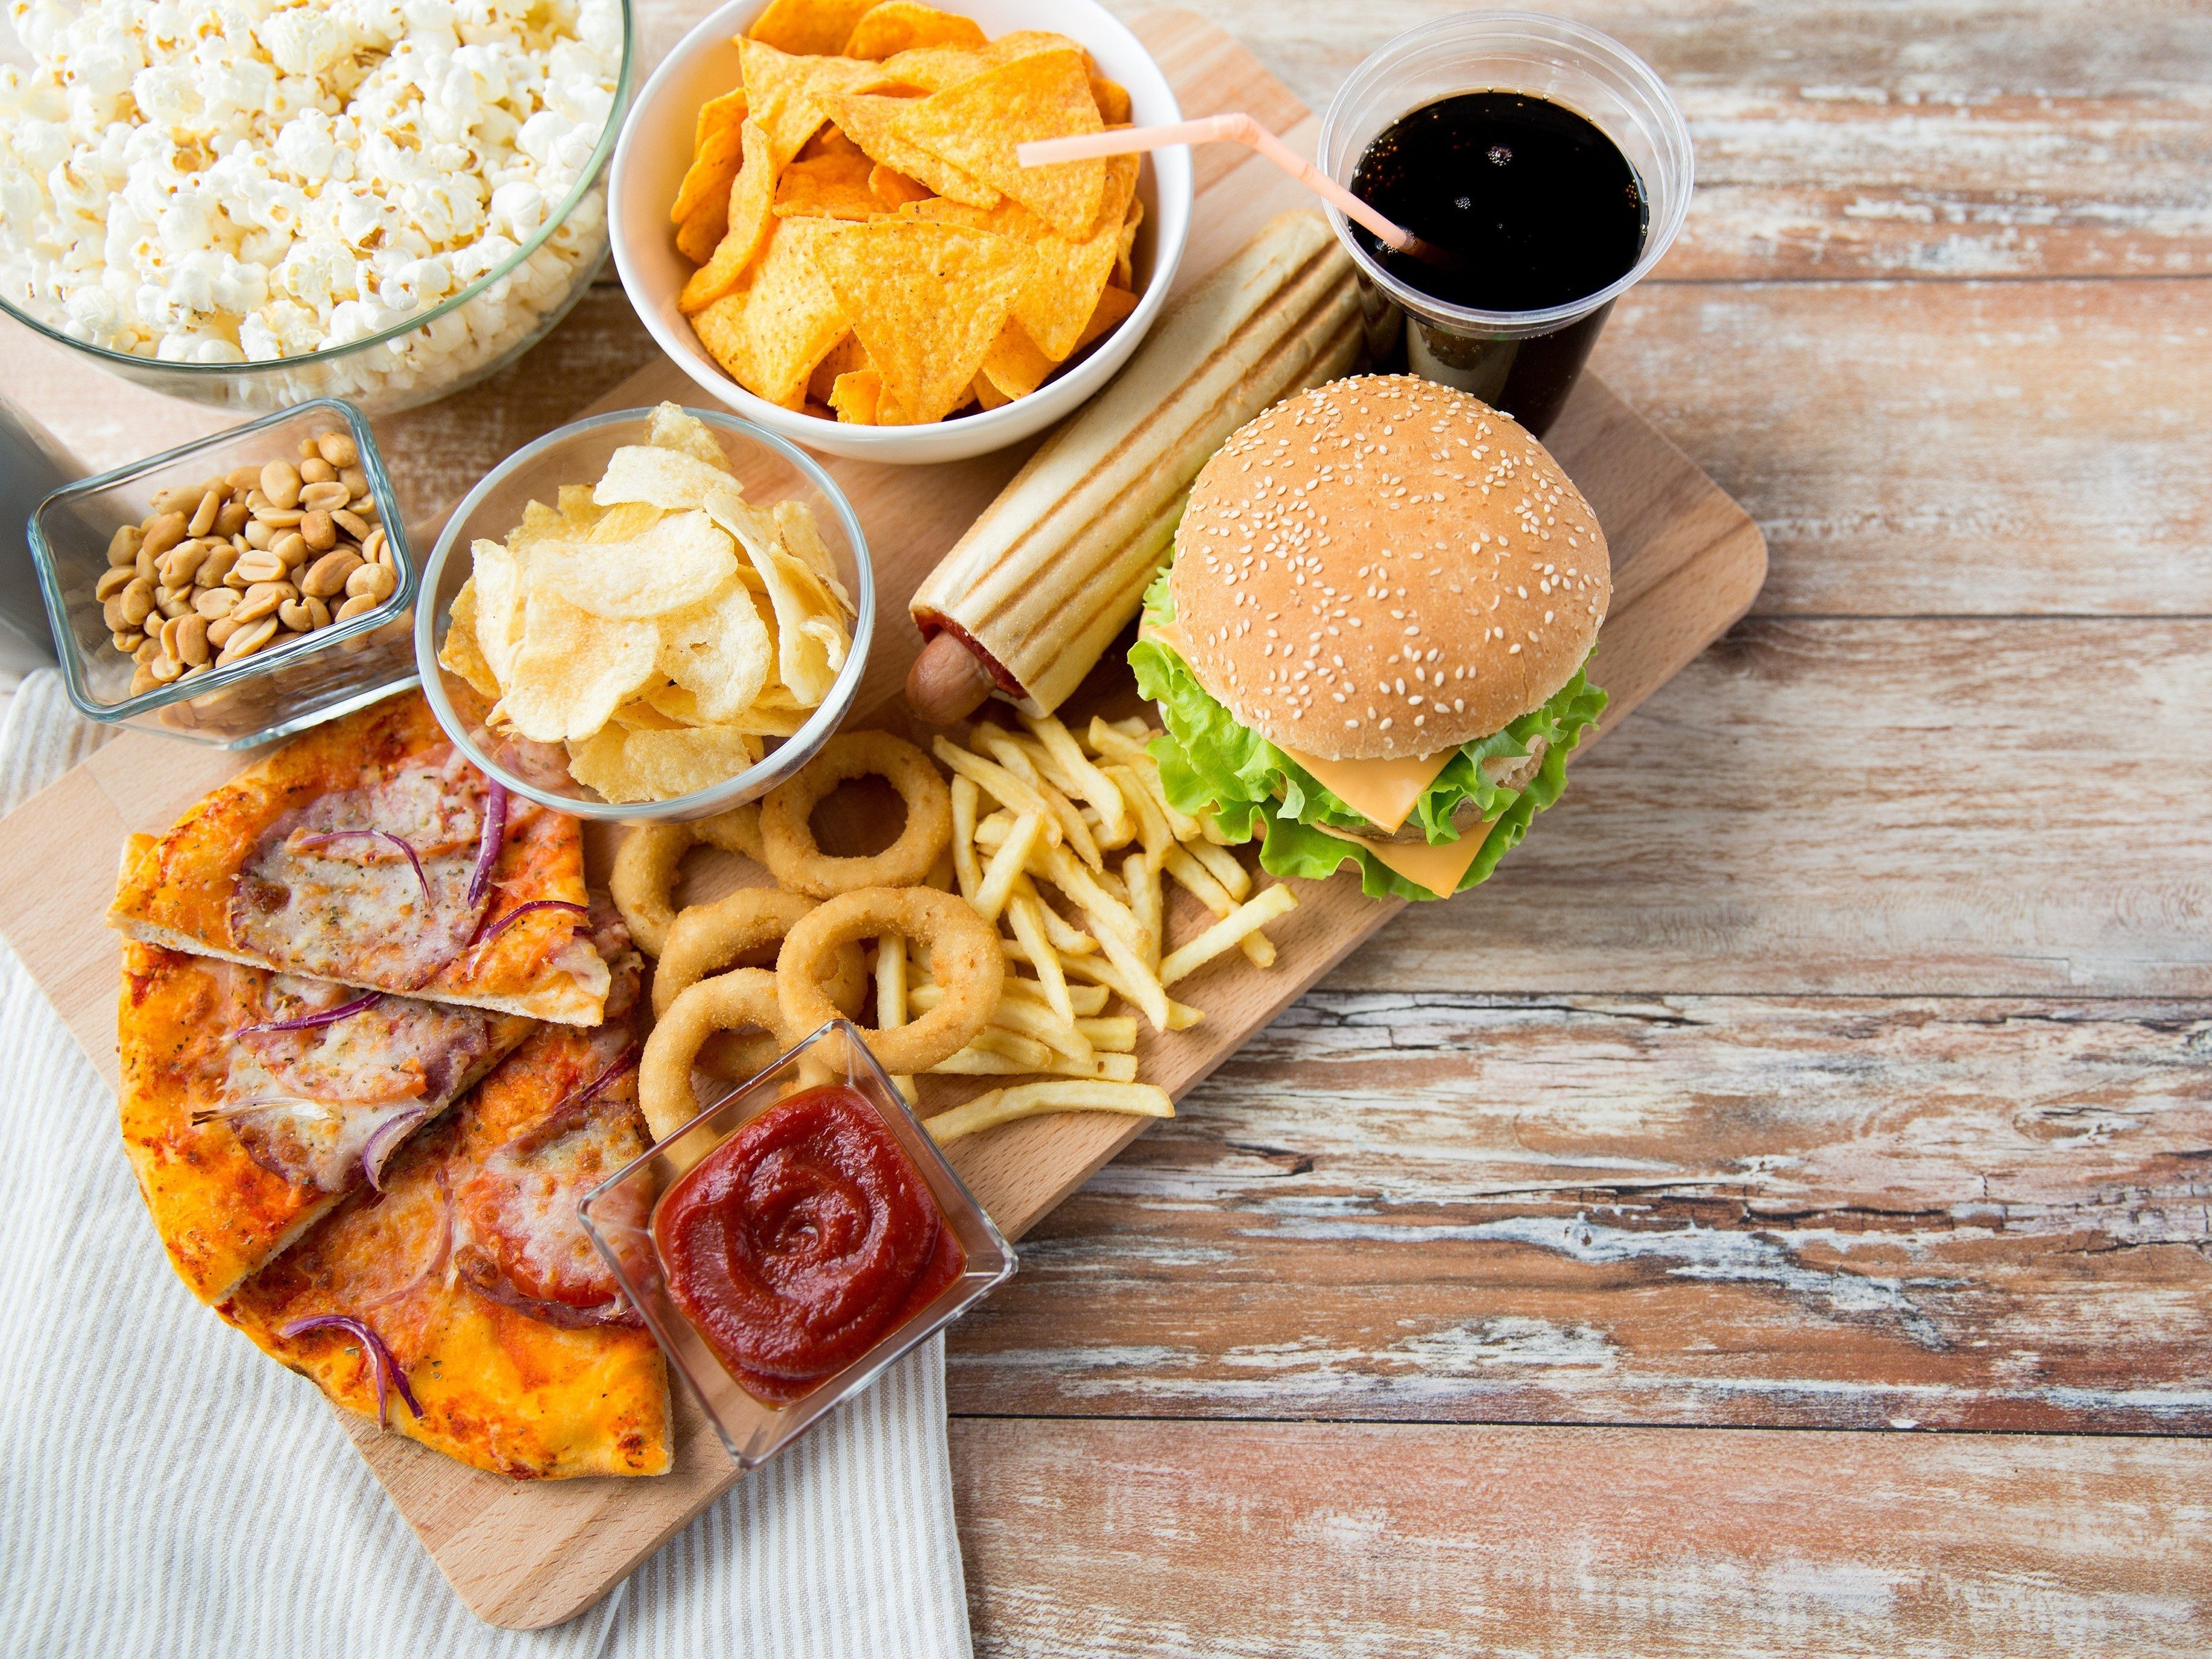 What's the difference between binge-eating and plain overeating?